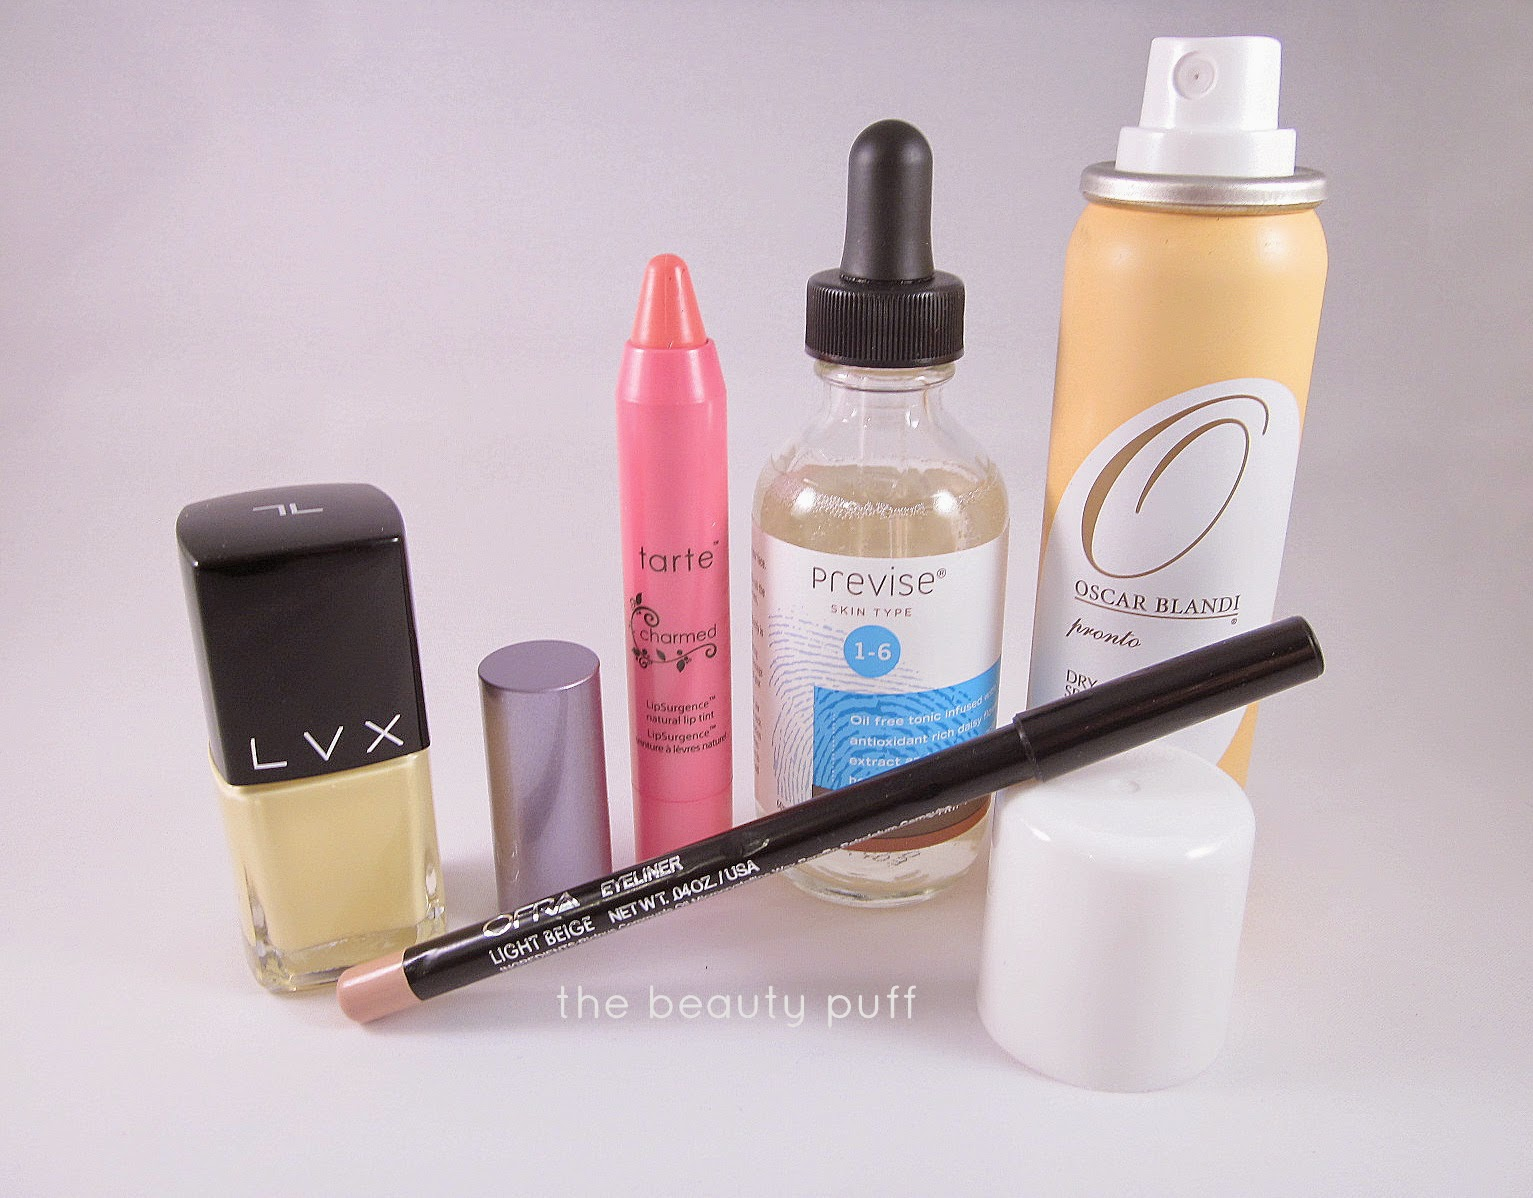 boxycharm march 2015 - the beauty puff